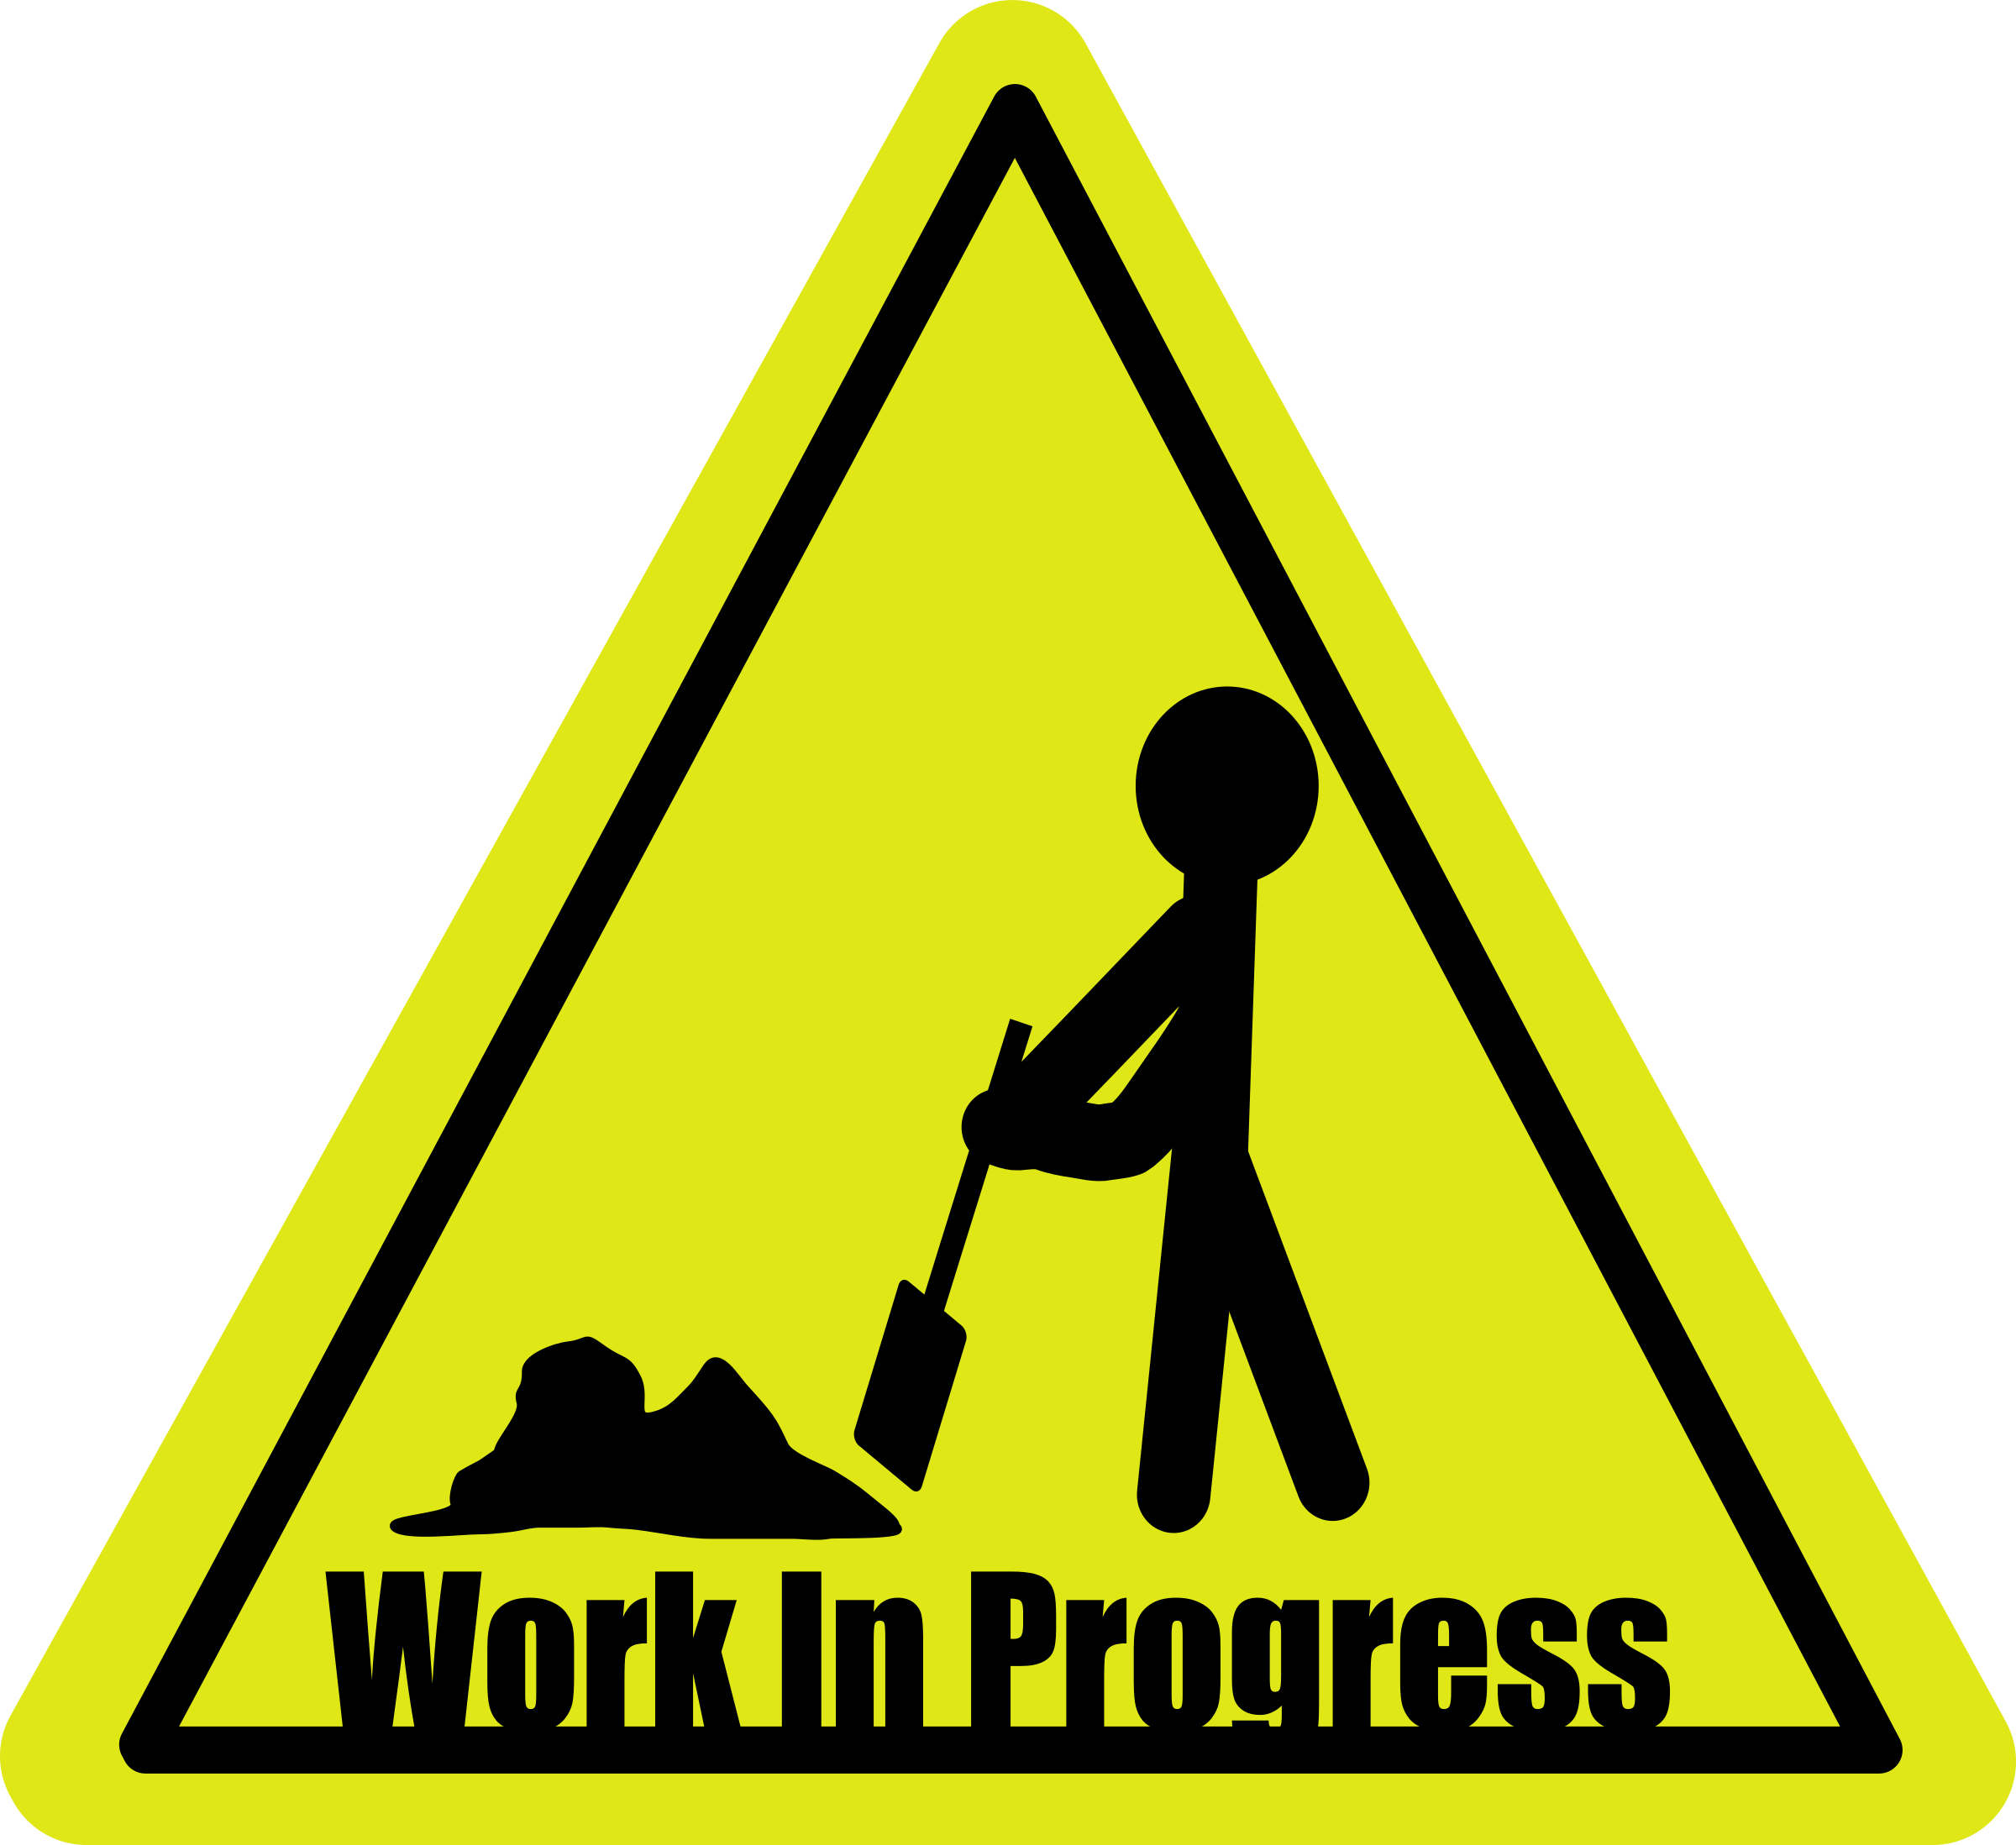 Working clipart symbol. Work in progress big